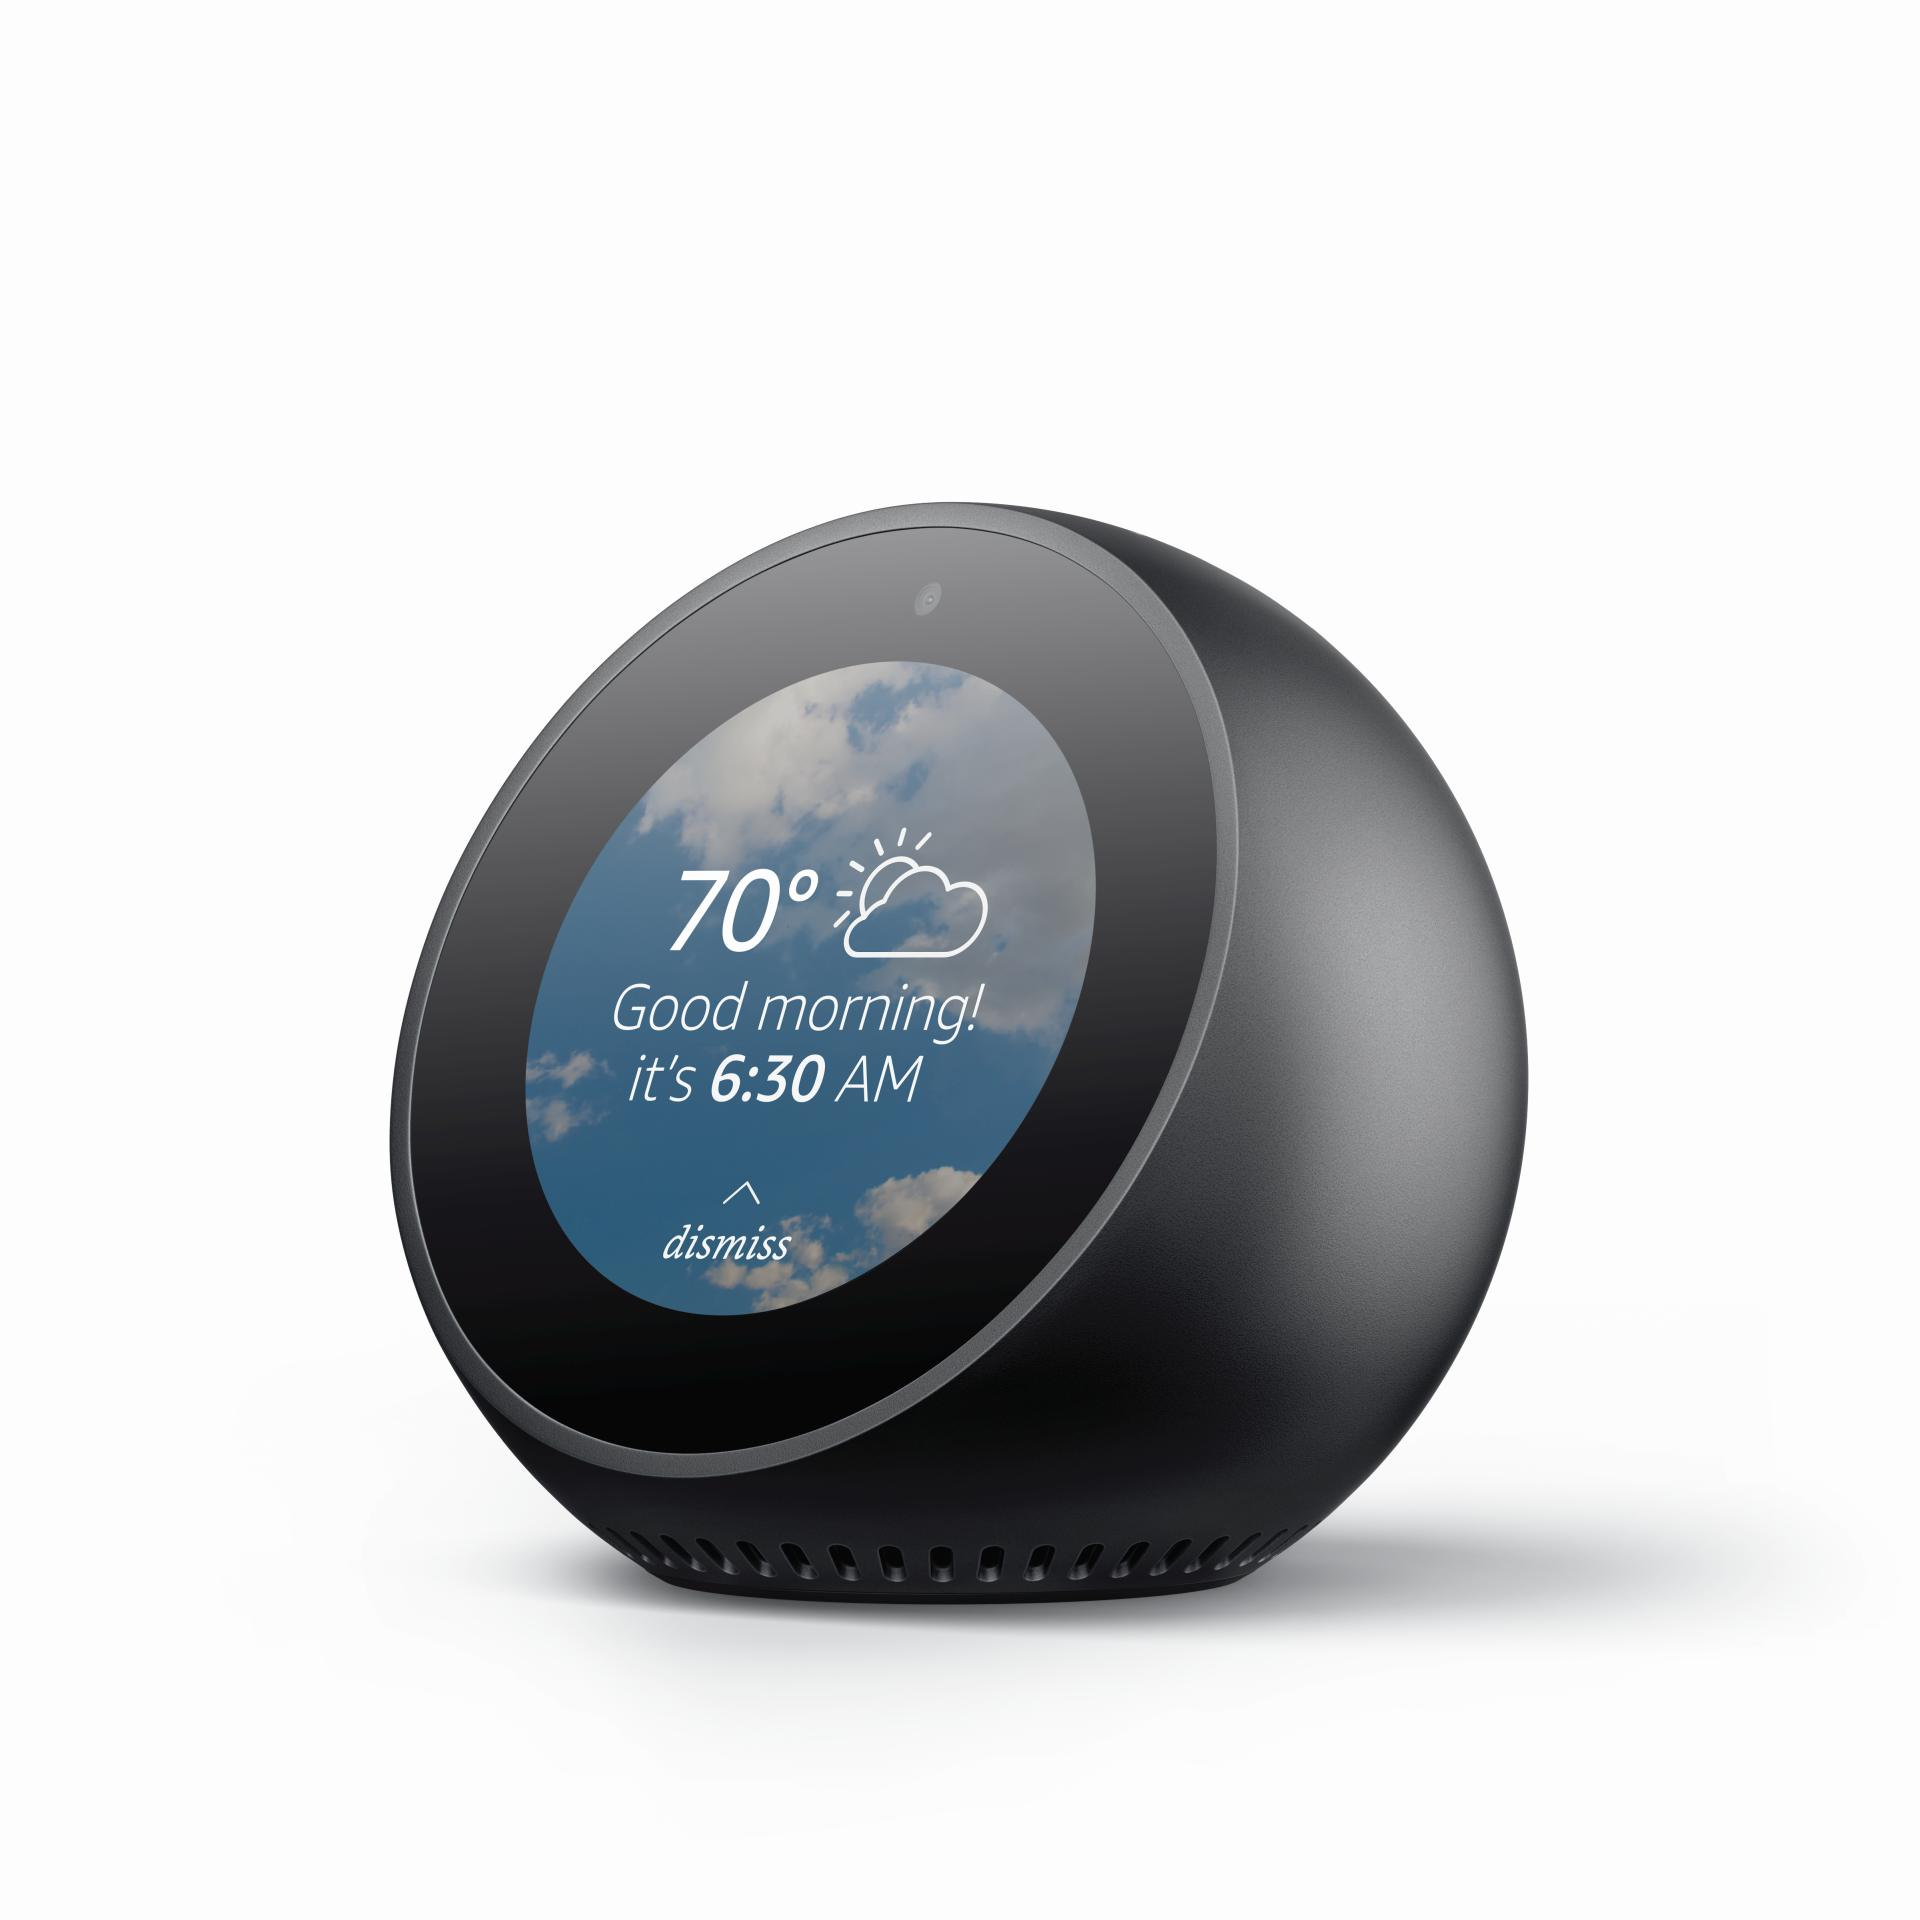 amazon echo spot preis release technische daten bilder. Black Bedroom Furniture Sets. Home Design Ideas